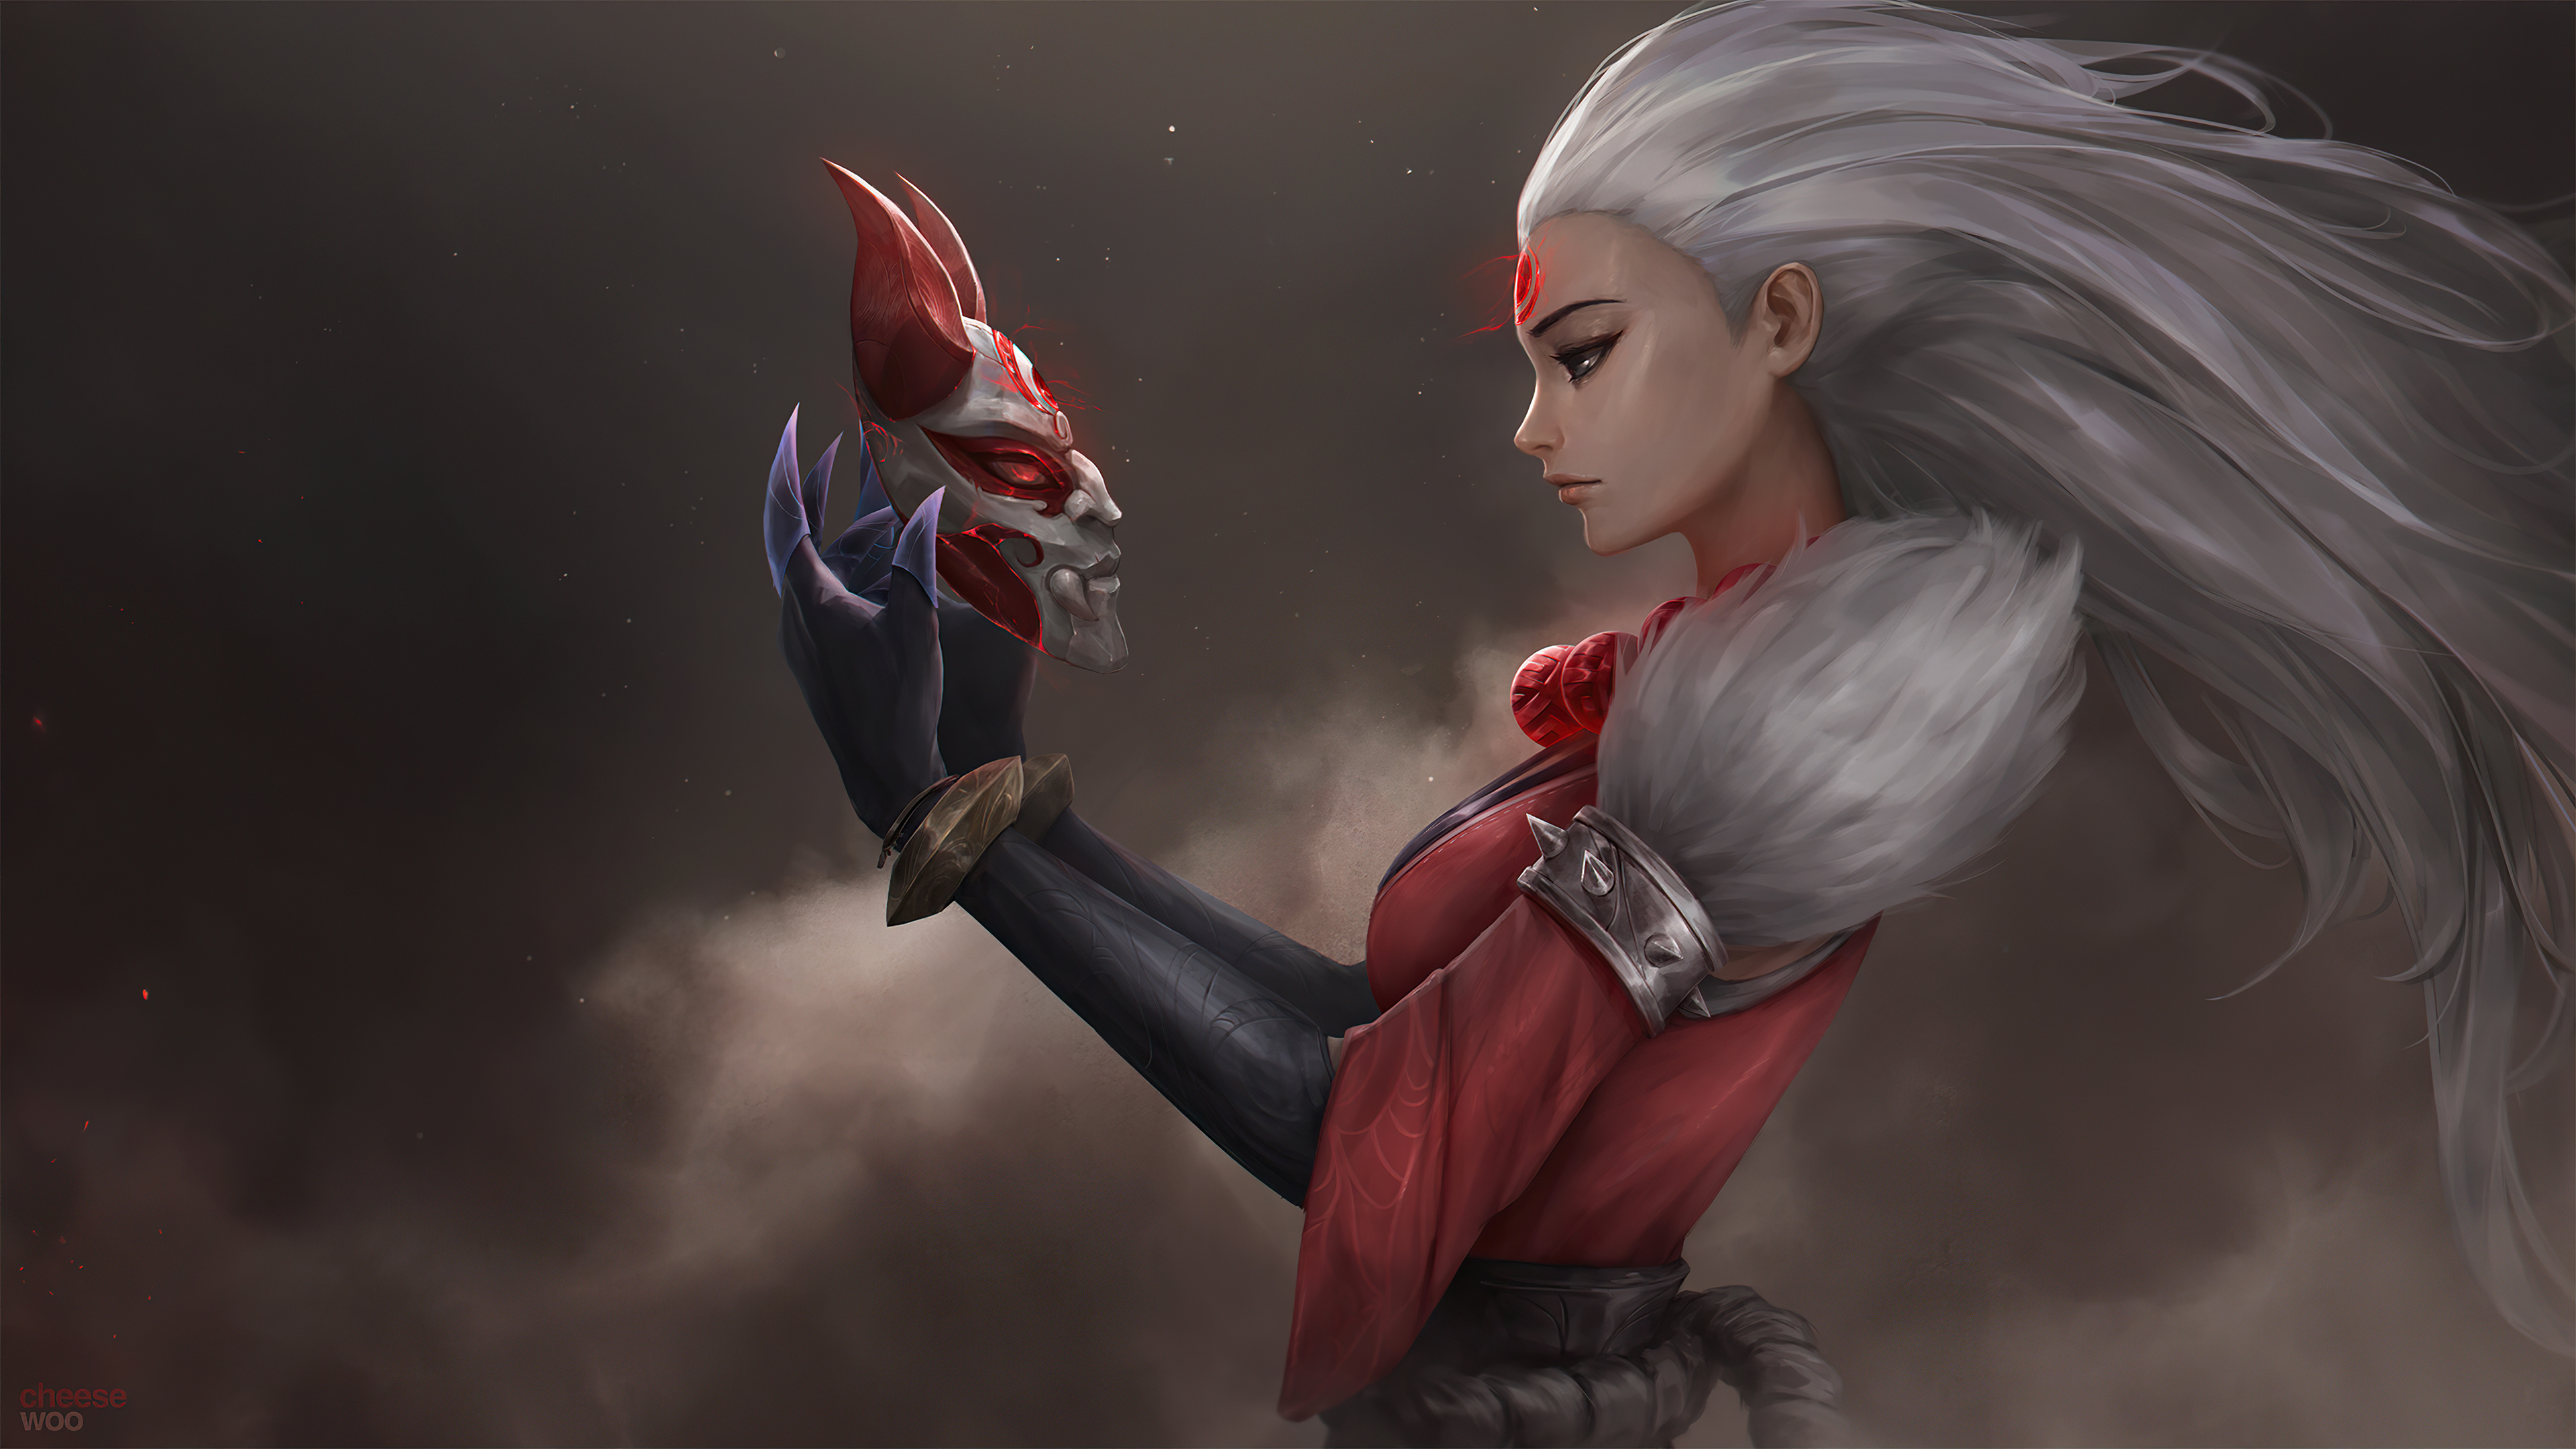 diana the blood moons call league of legends 4k 1628453438 - Diana The Blood Moons Call League Of Legends 4k - Diana The Blood Moons Call League Of Legends 4k wallpapers